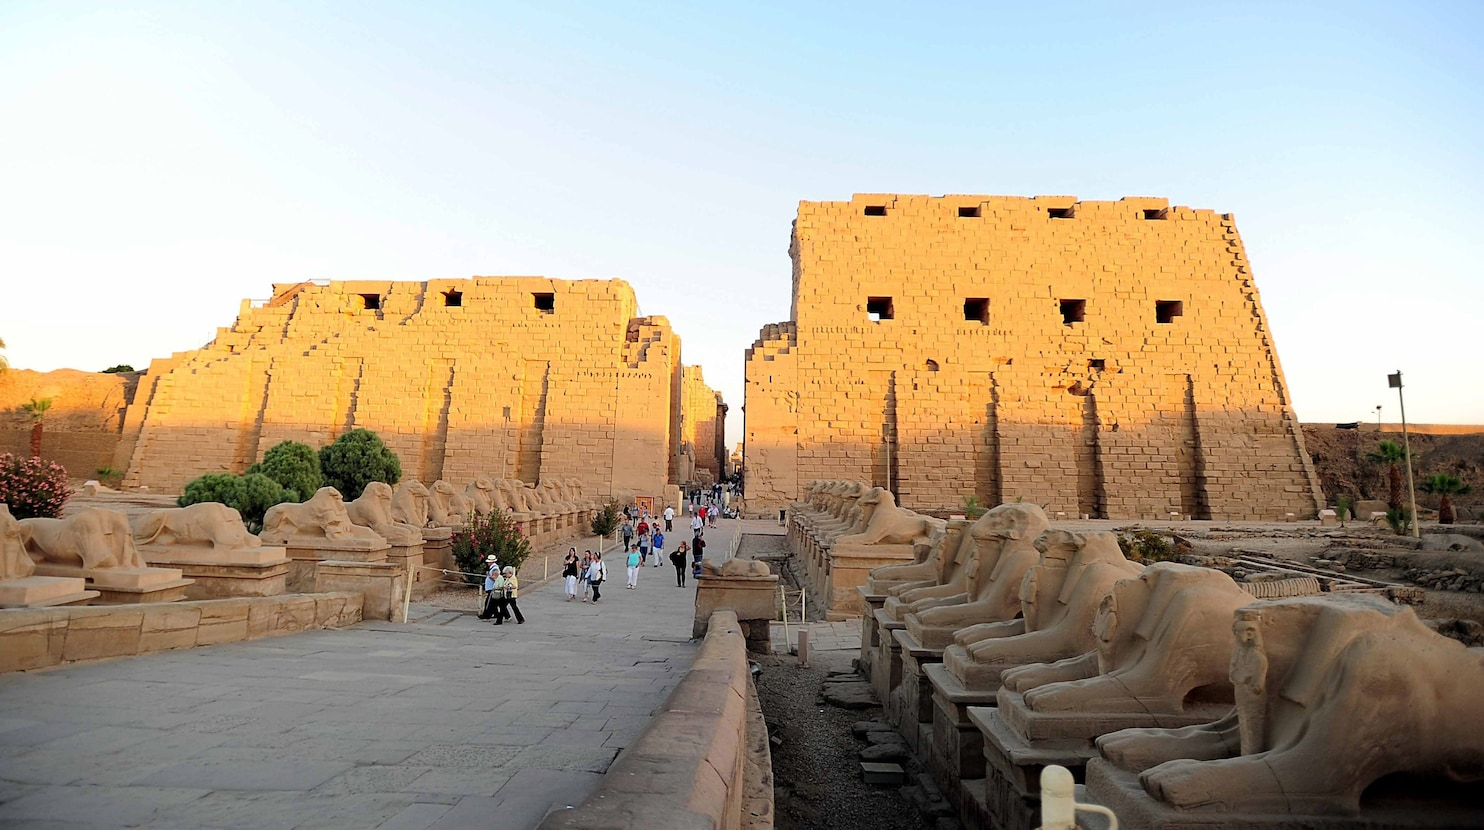 Suicide bomber 2 other armed men target Egypts temple site at Luxor  The Washington Post